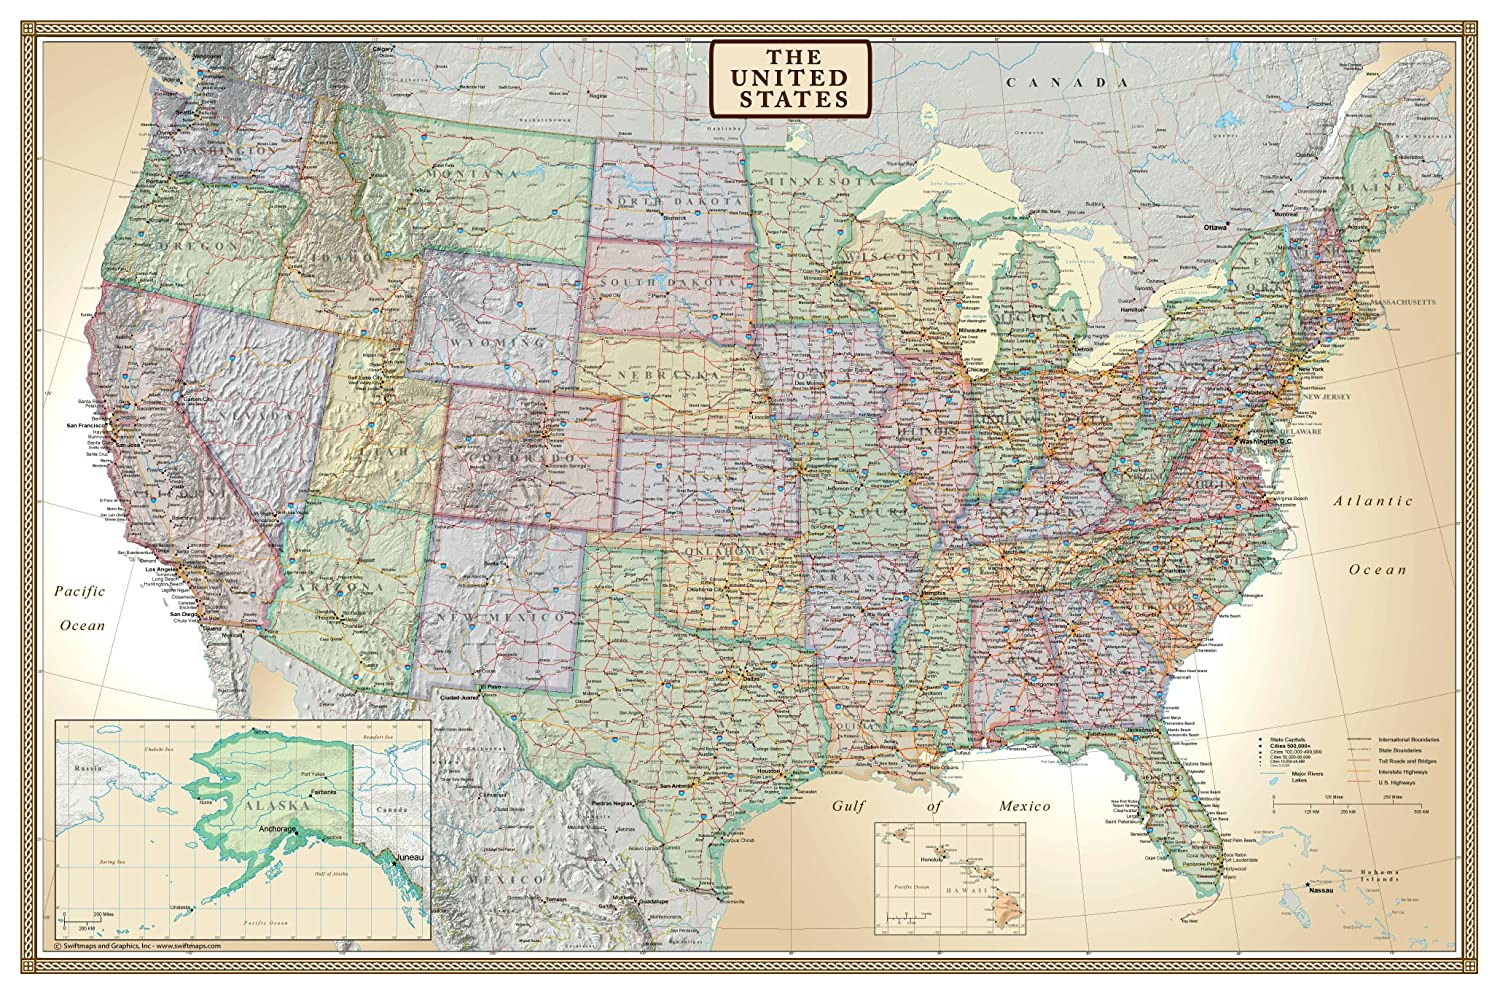 Amazoncom 24x36 United States Usa Us Executive Wall Map Poster - Us-map-poster